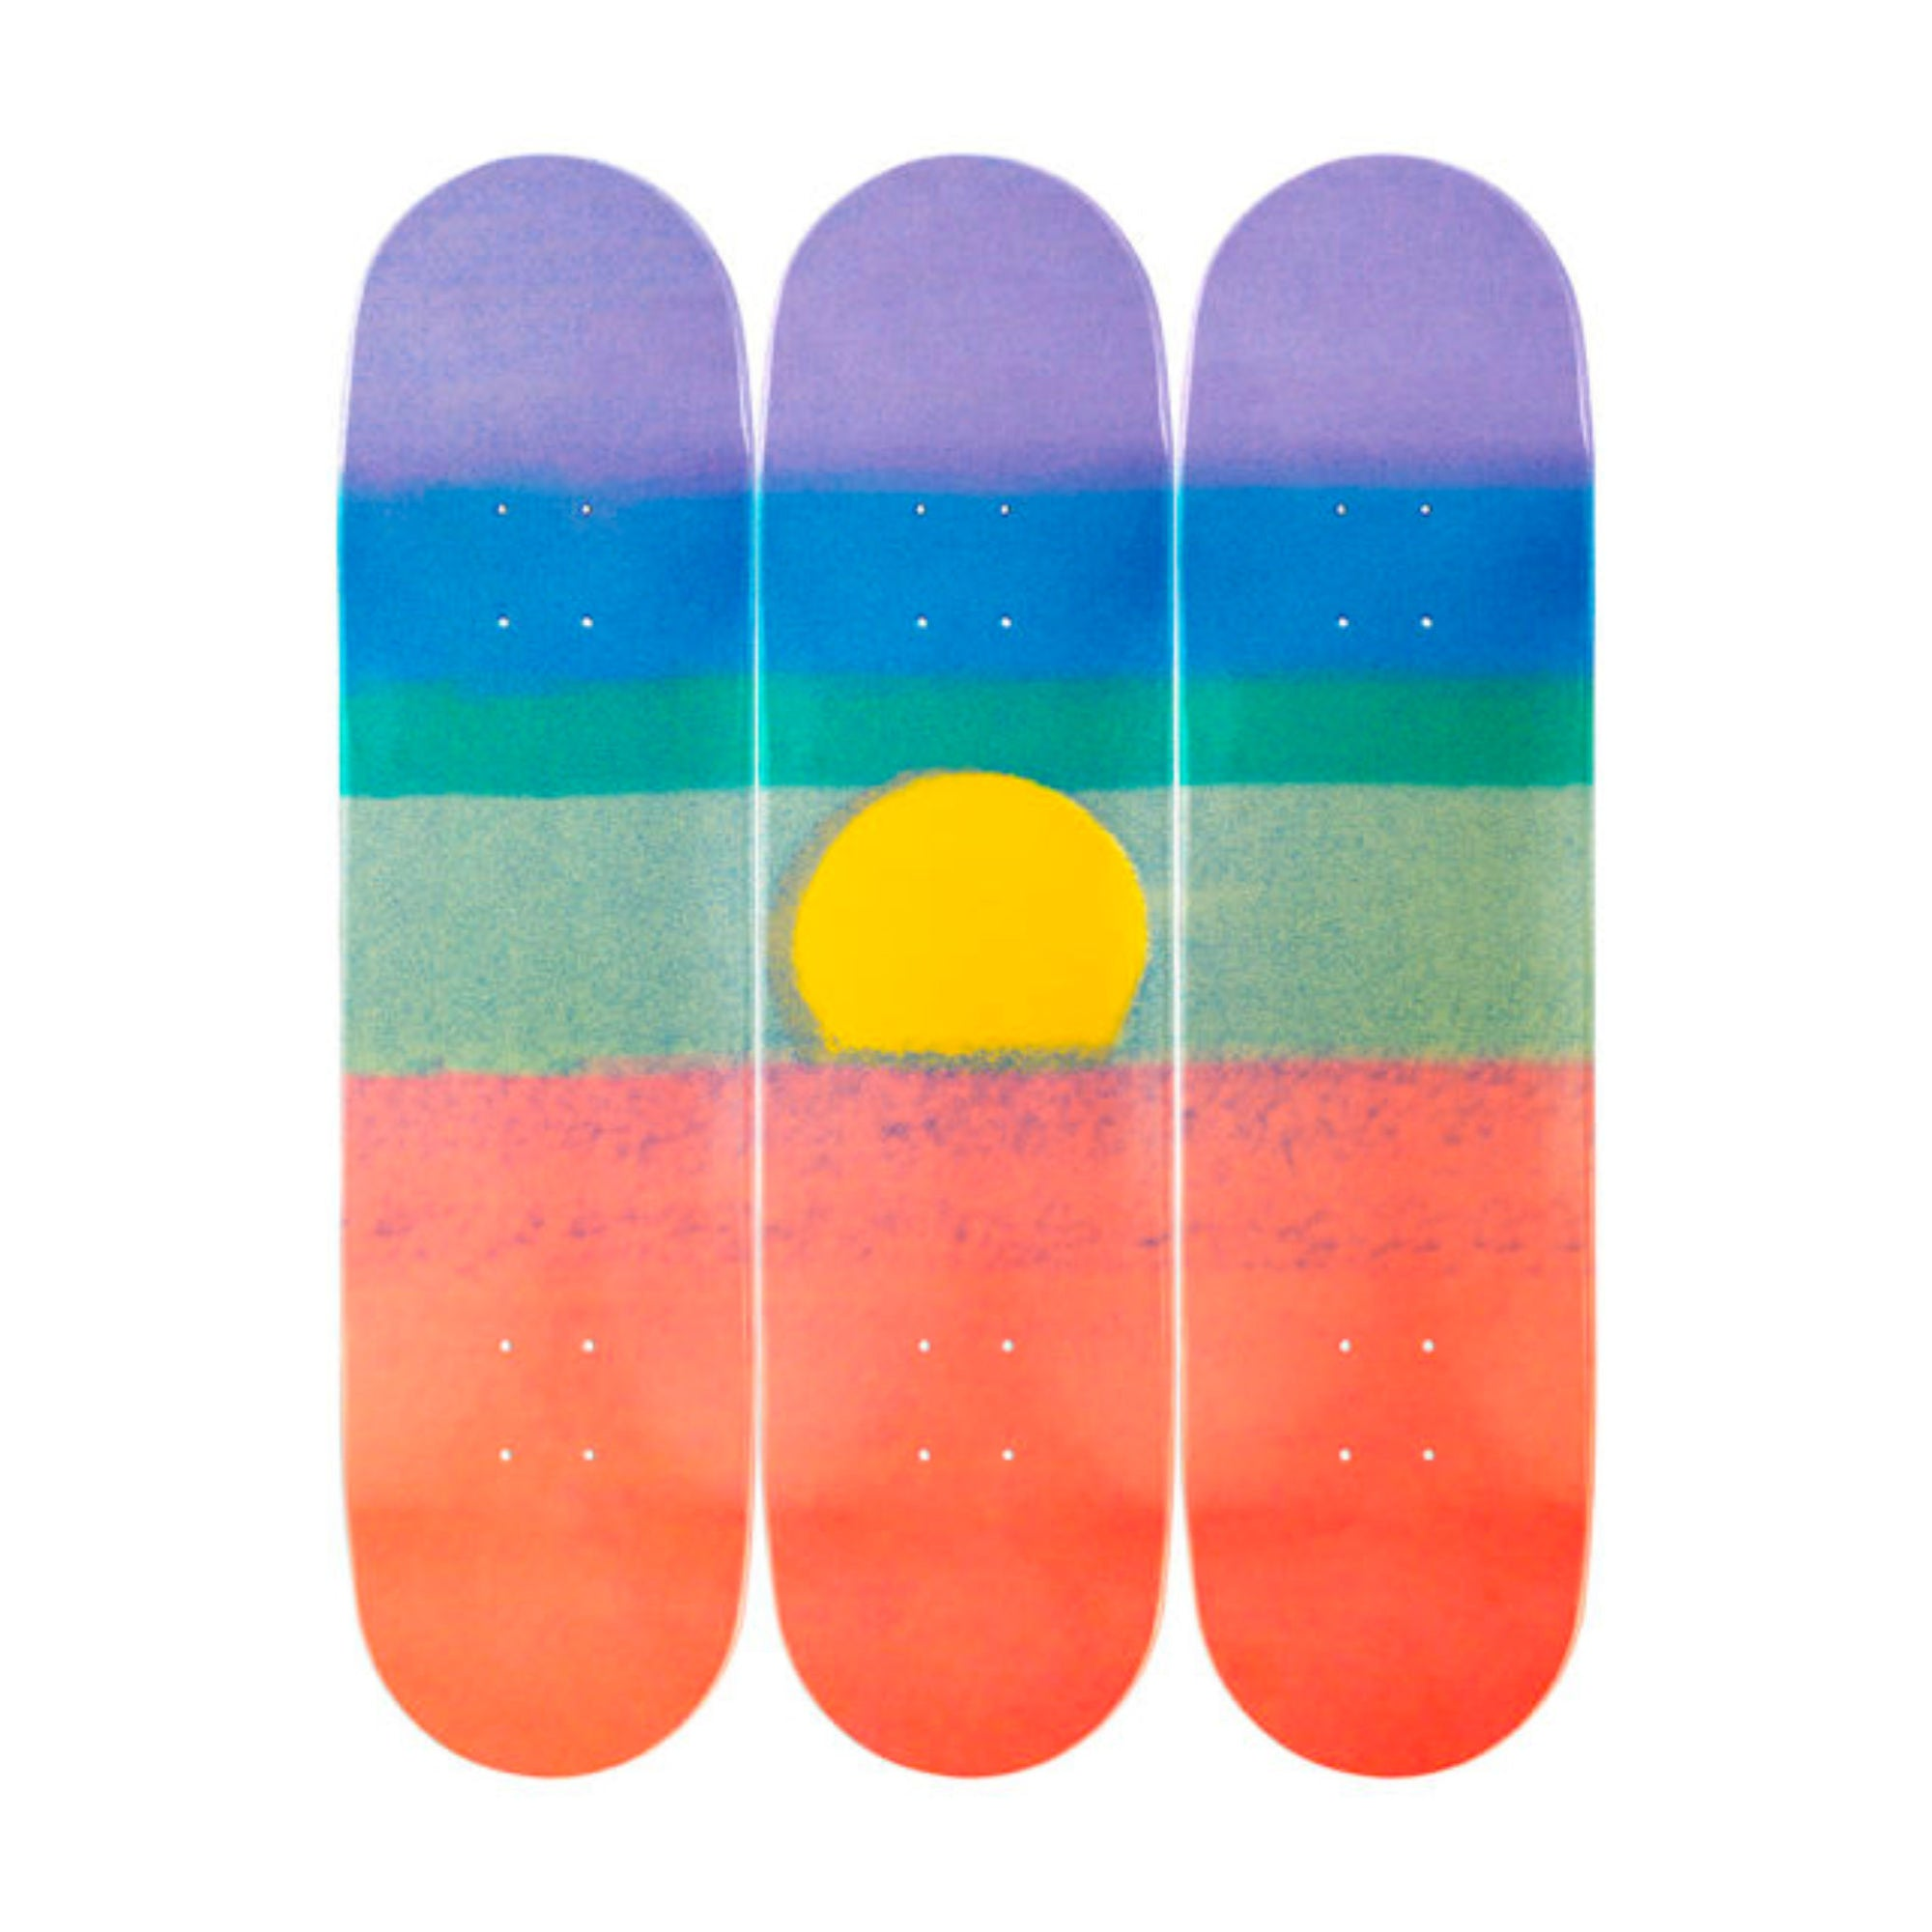 The Skateroom skateboard, Andy Warhol Sunset Orange